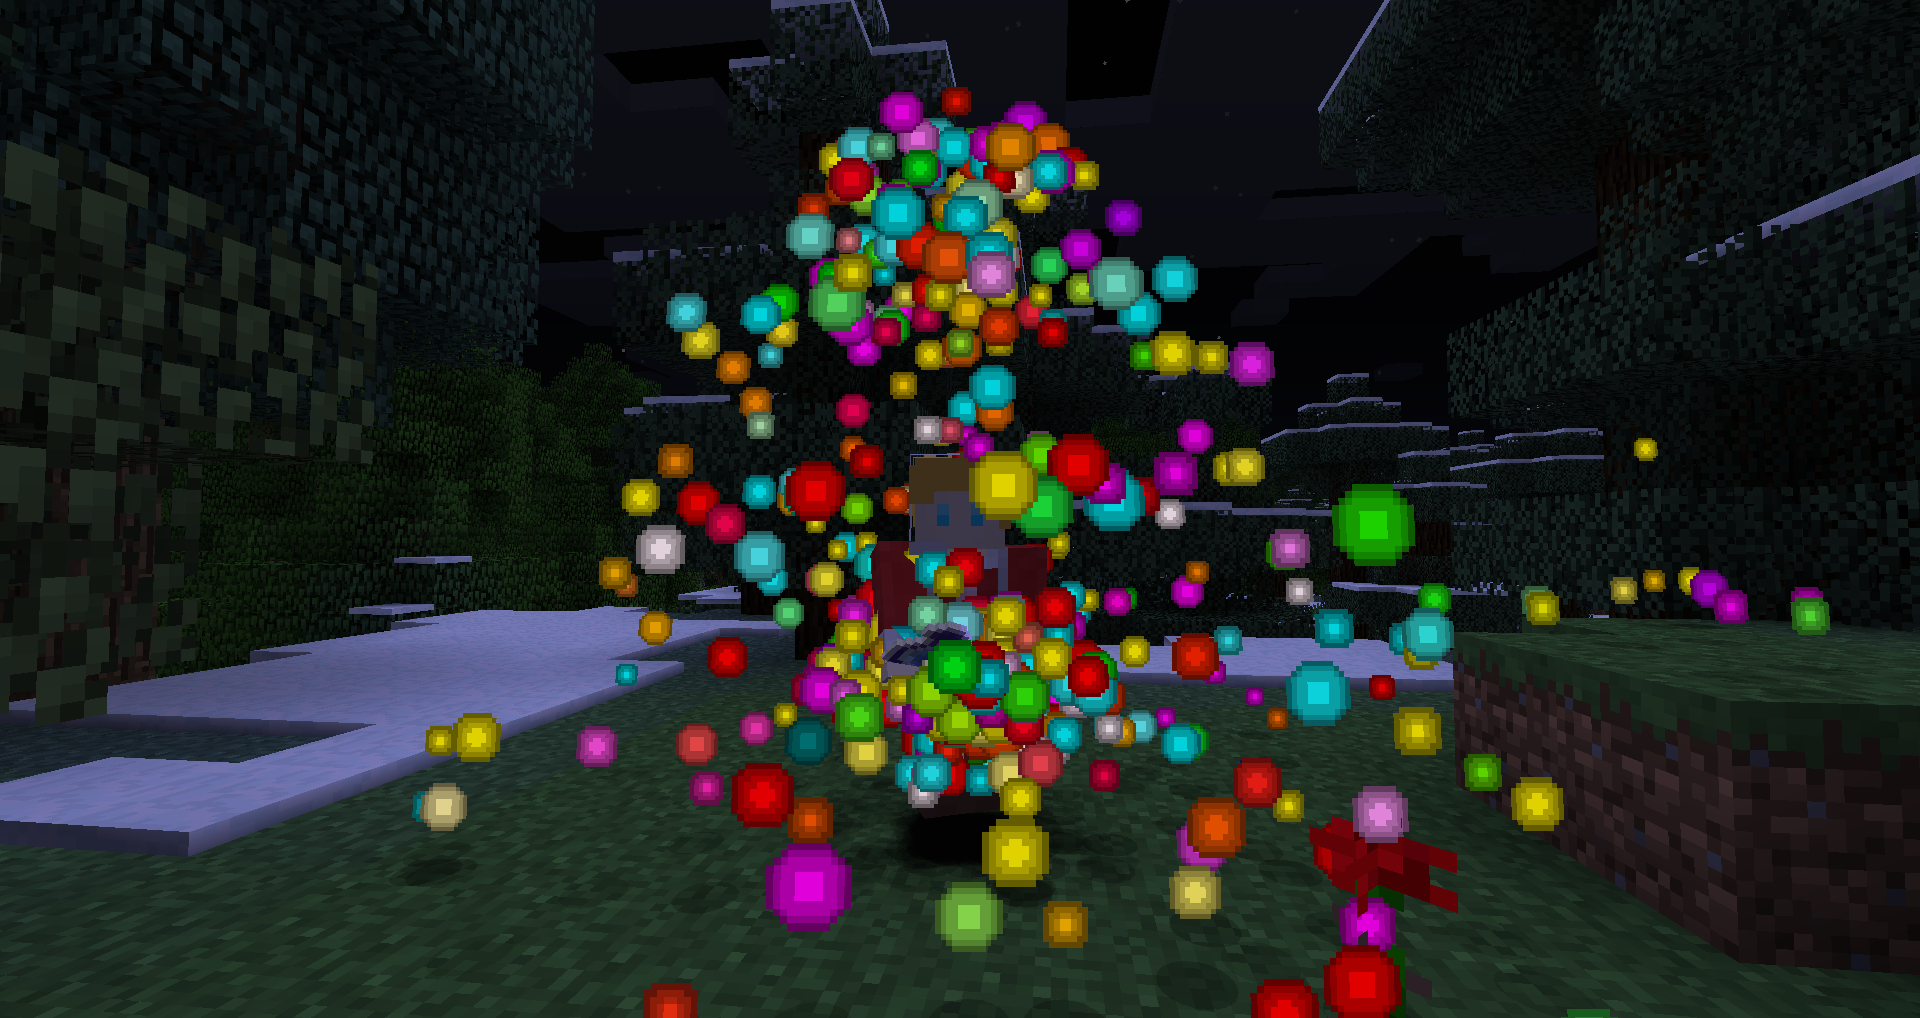 http://minecraft-forum.net/wp-content/uploads/2013/01/674e6__Rainbow-Xp-Mod-1.png